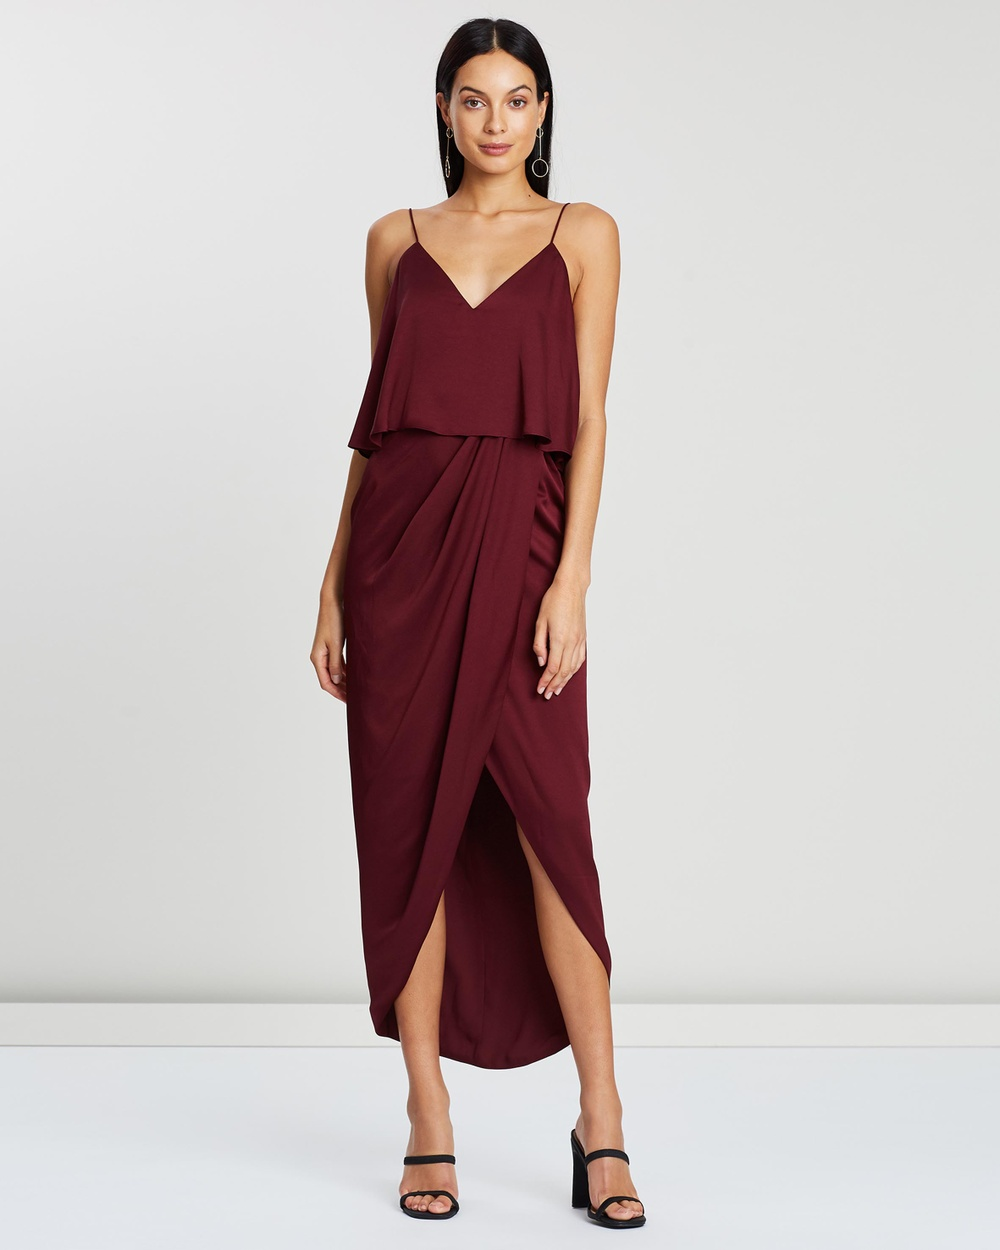 Shona Joy Cocktail Frill Dress Bridesmaid Dresses Garnet Cocktail Frill Dress